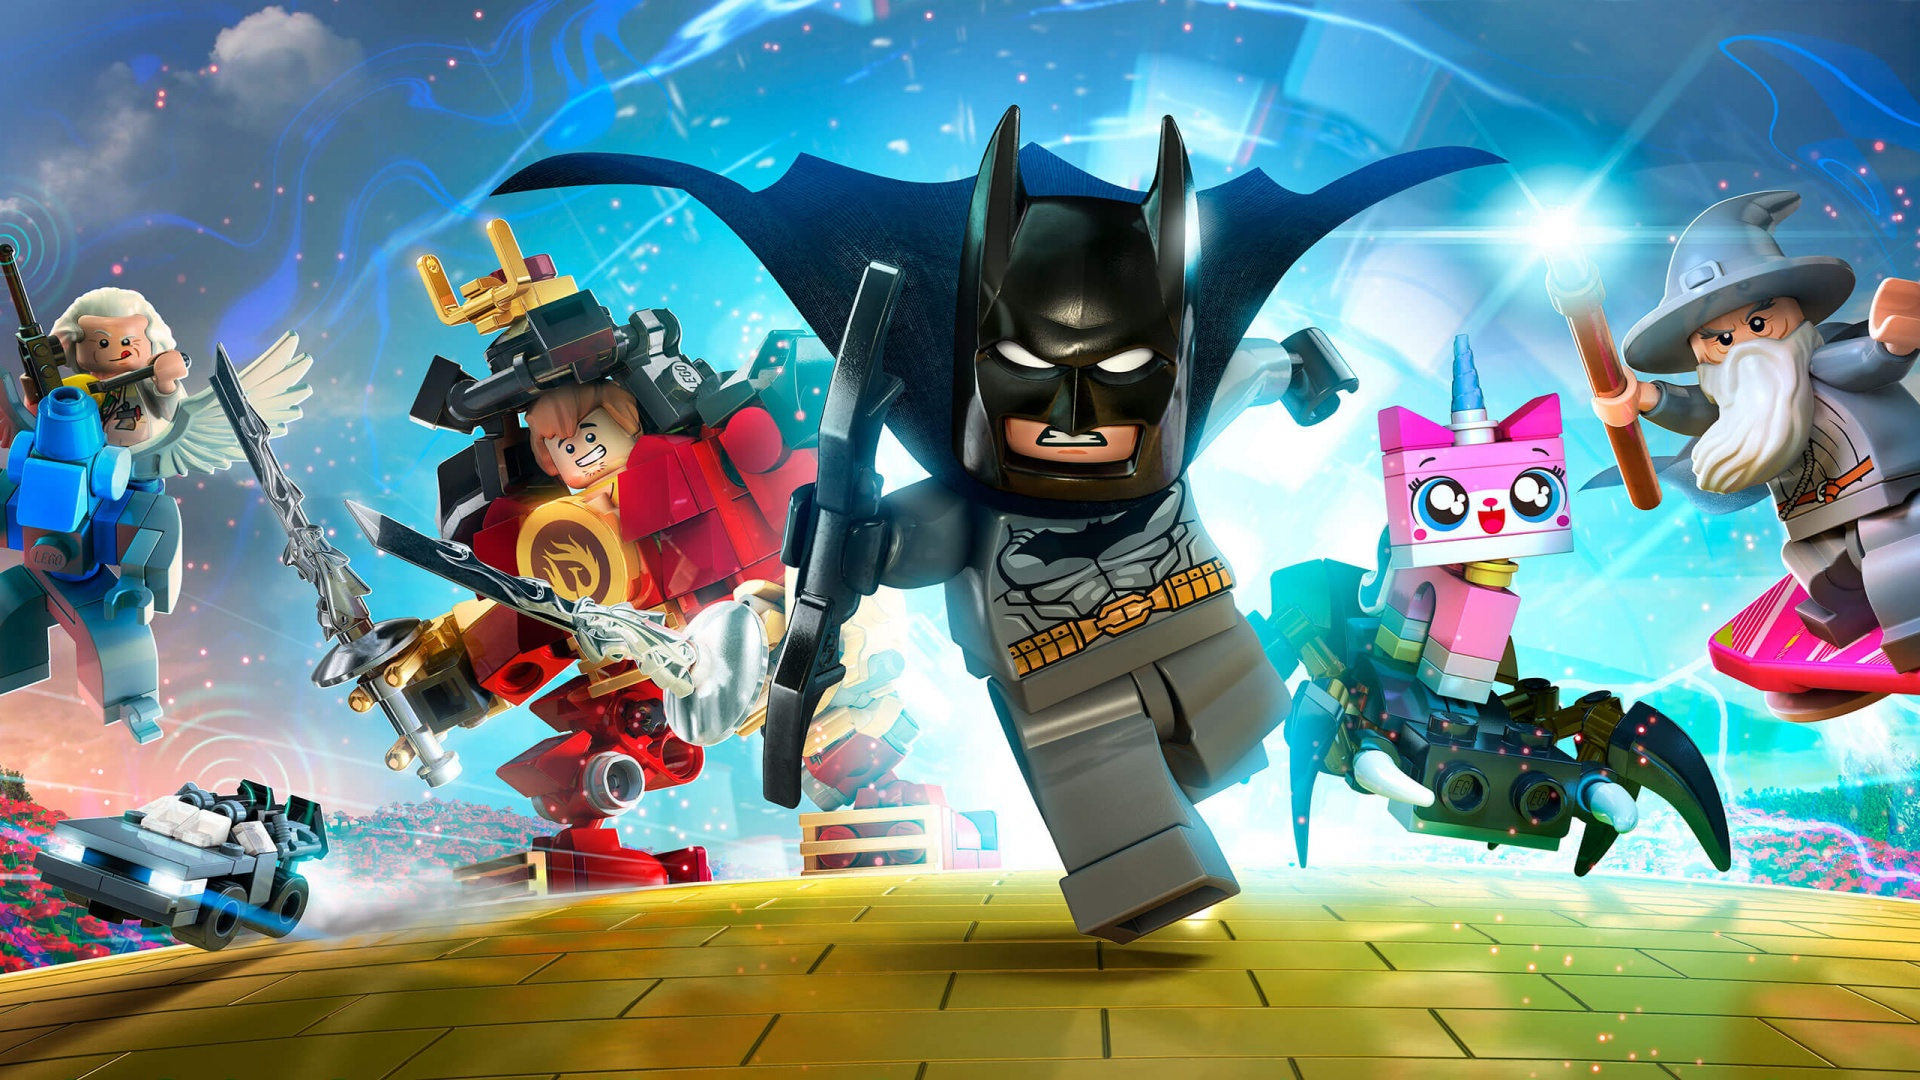 lego dimensions wallpaper  LEGO Dimensions 2015 Game Wallpapers in jpg format for free download